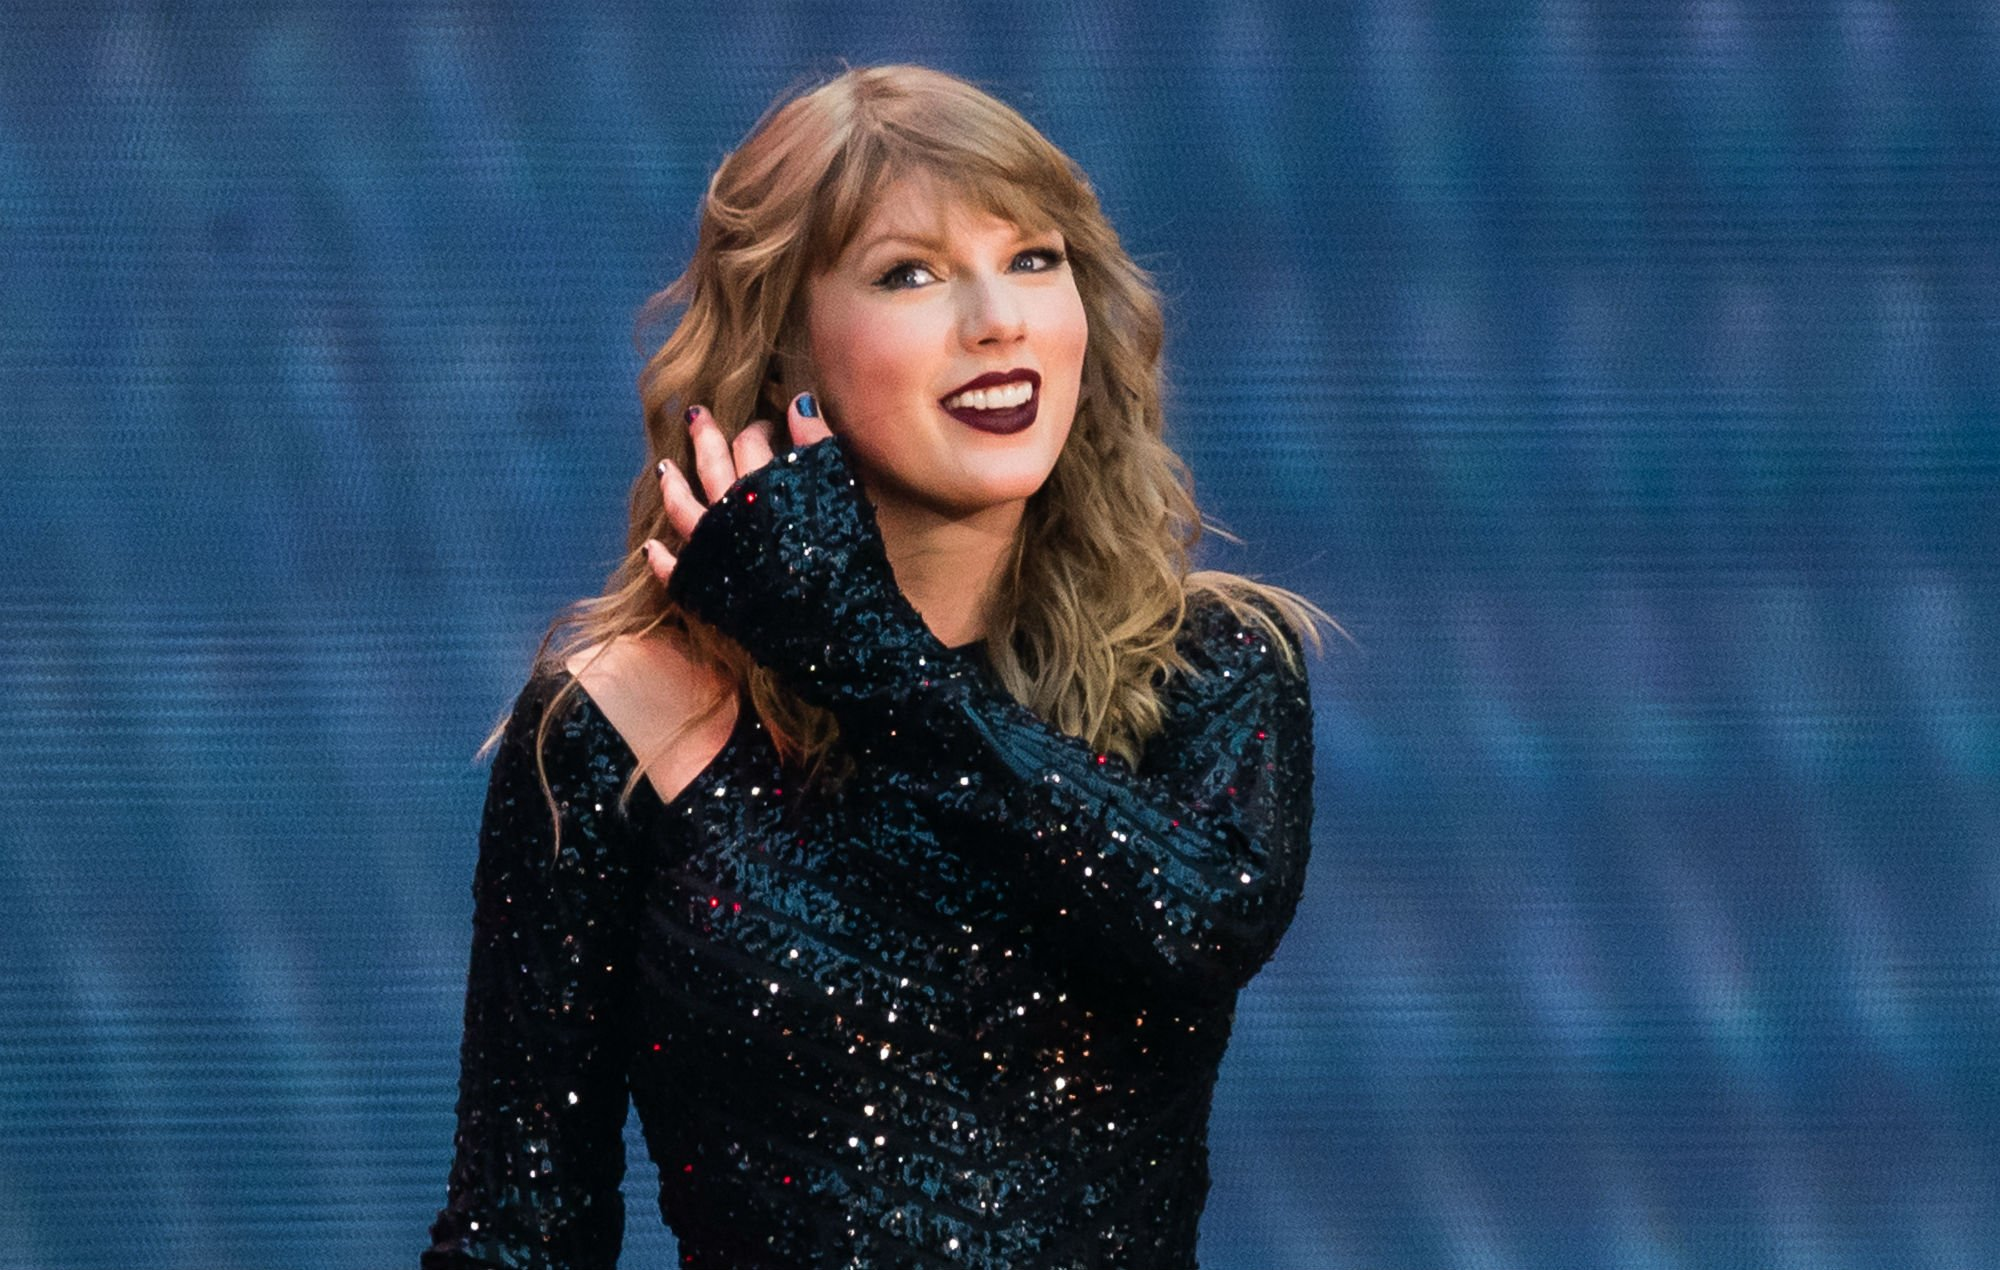 Taylor Swift Reportedly Misses Being On Stage – Can't Wait To Get Back On Tour!